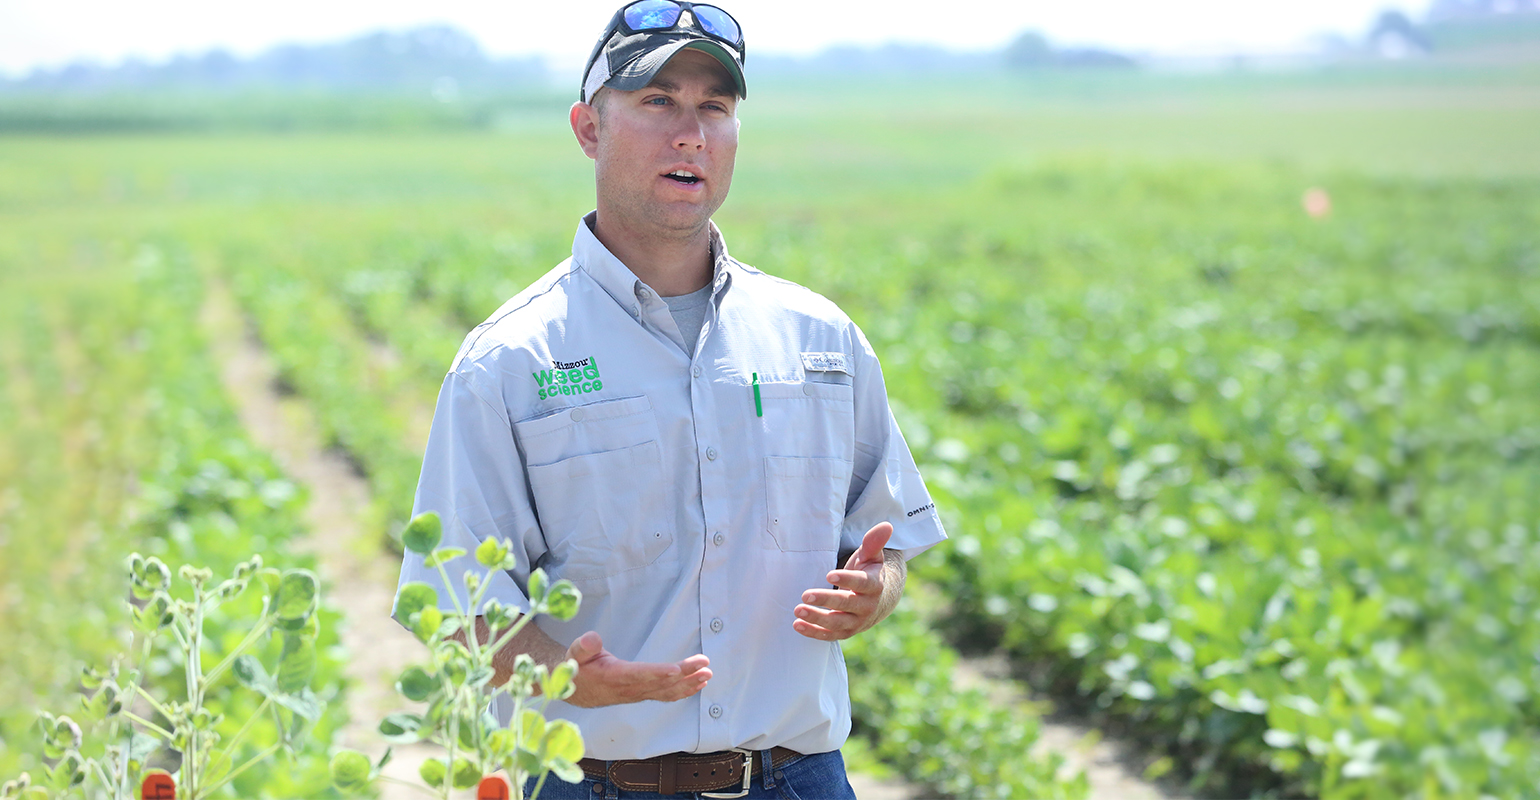 Brian Dintelmann presented on dicamba drift during field day